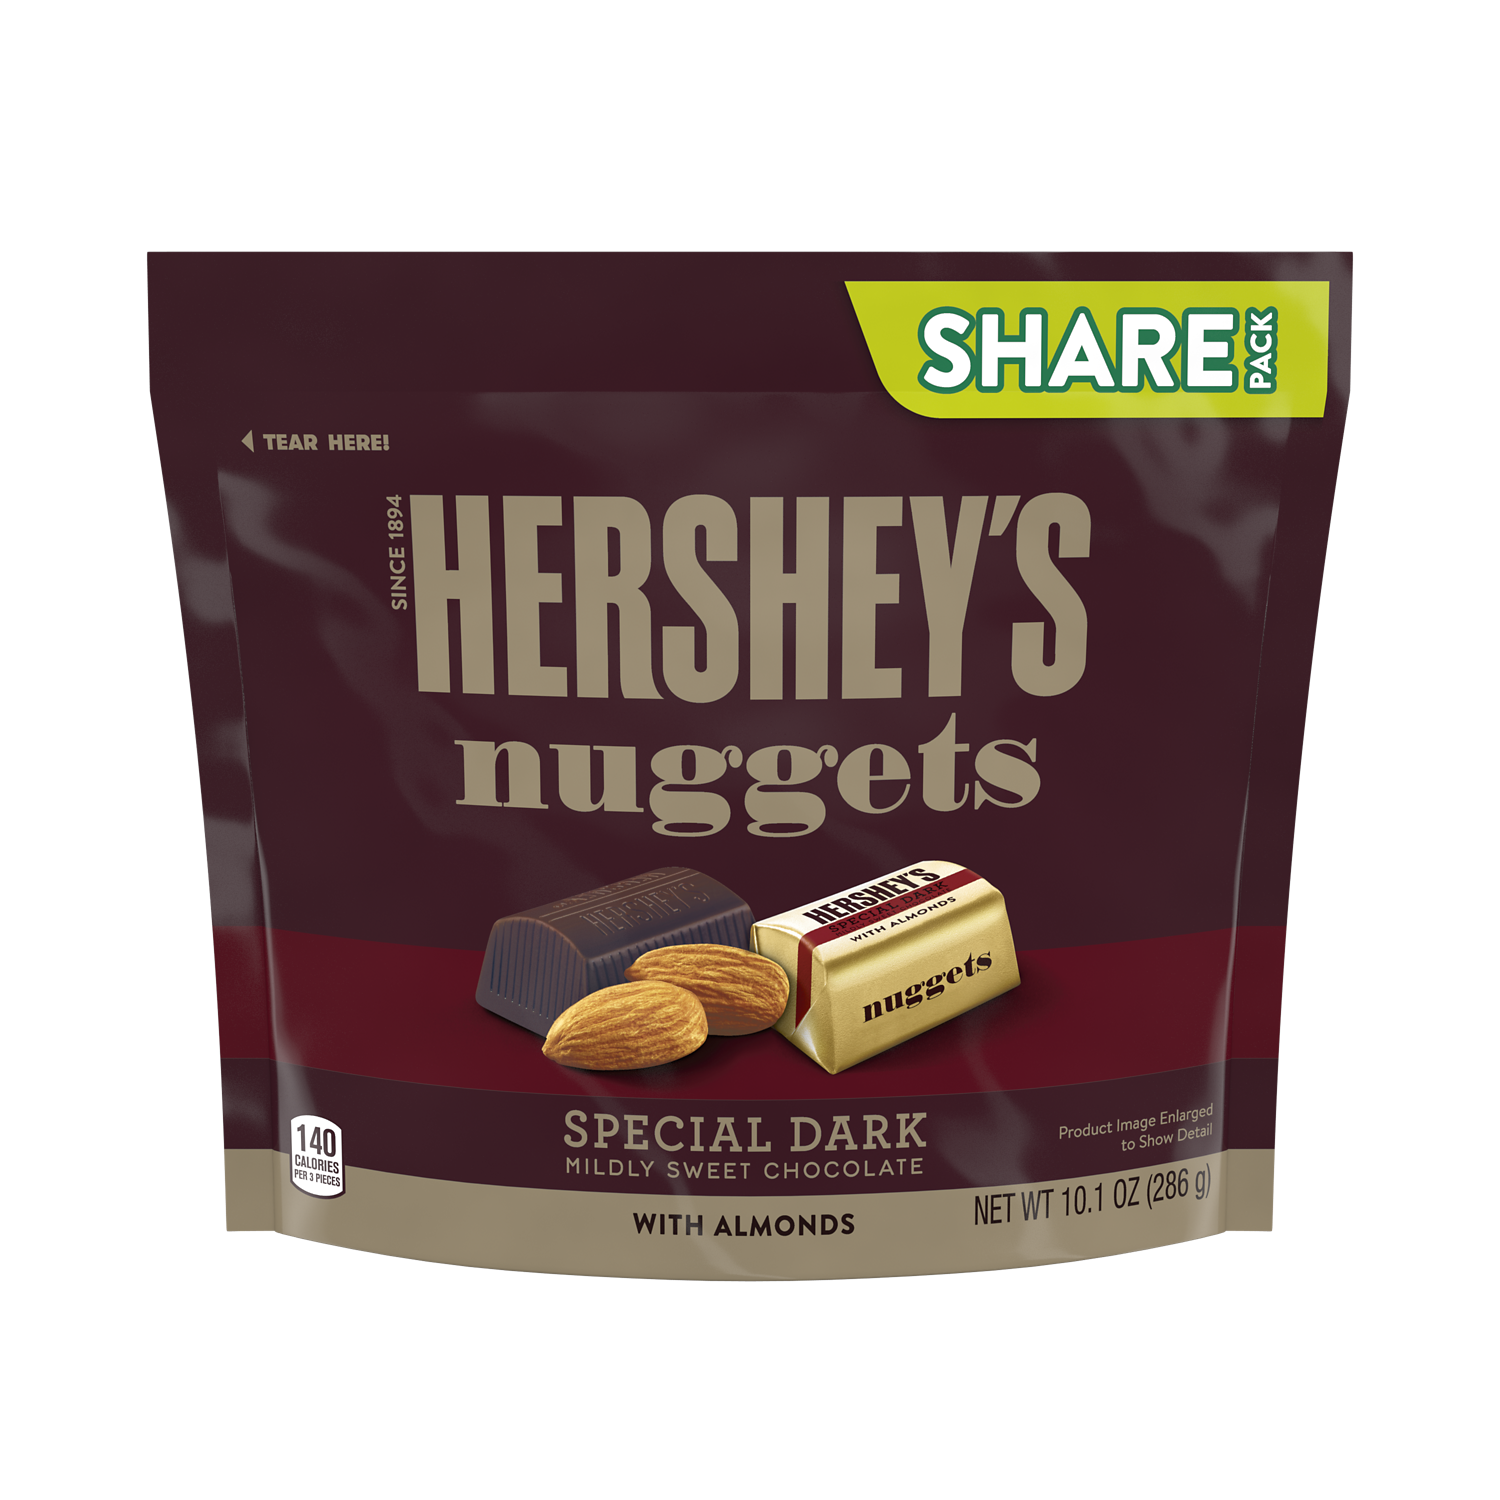 HERSHEY'S NUGGETS SPECIAL DARK Mildly Sweet Chocolate with Almonds Candy, 10.1 oz pack - Front of Package